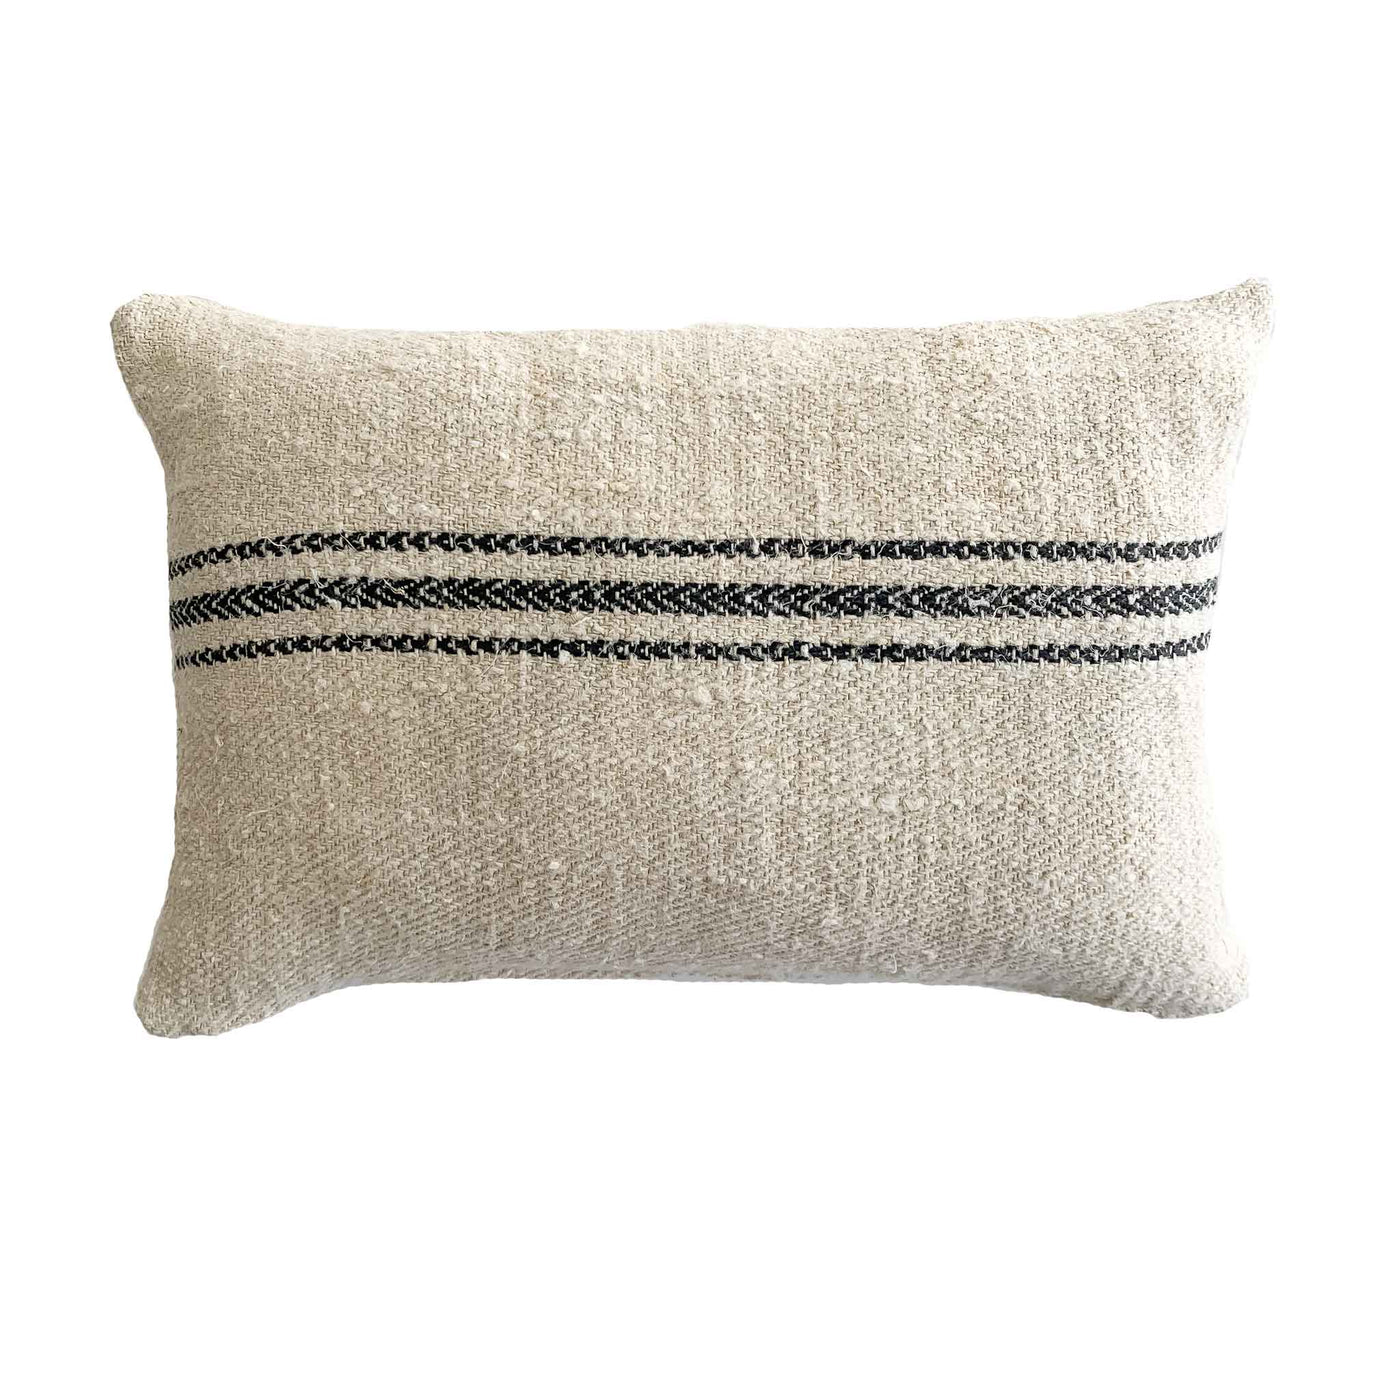 14x20 Antique Grain Sack With Black Stripes - Studio Pillows